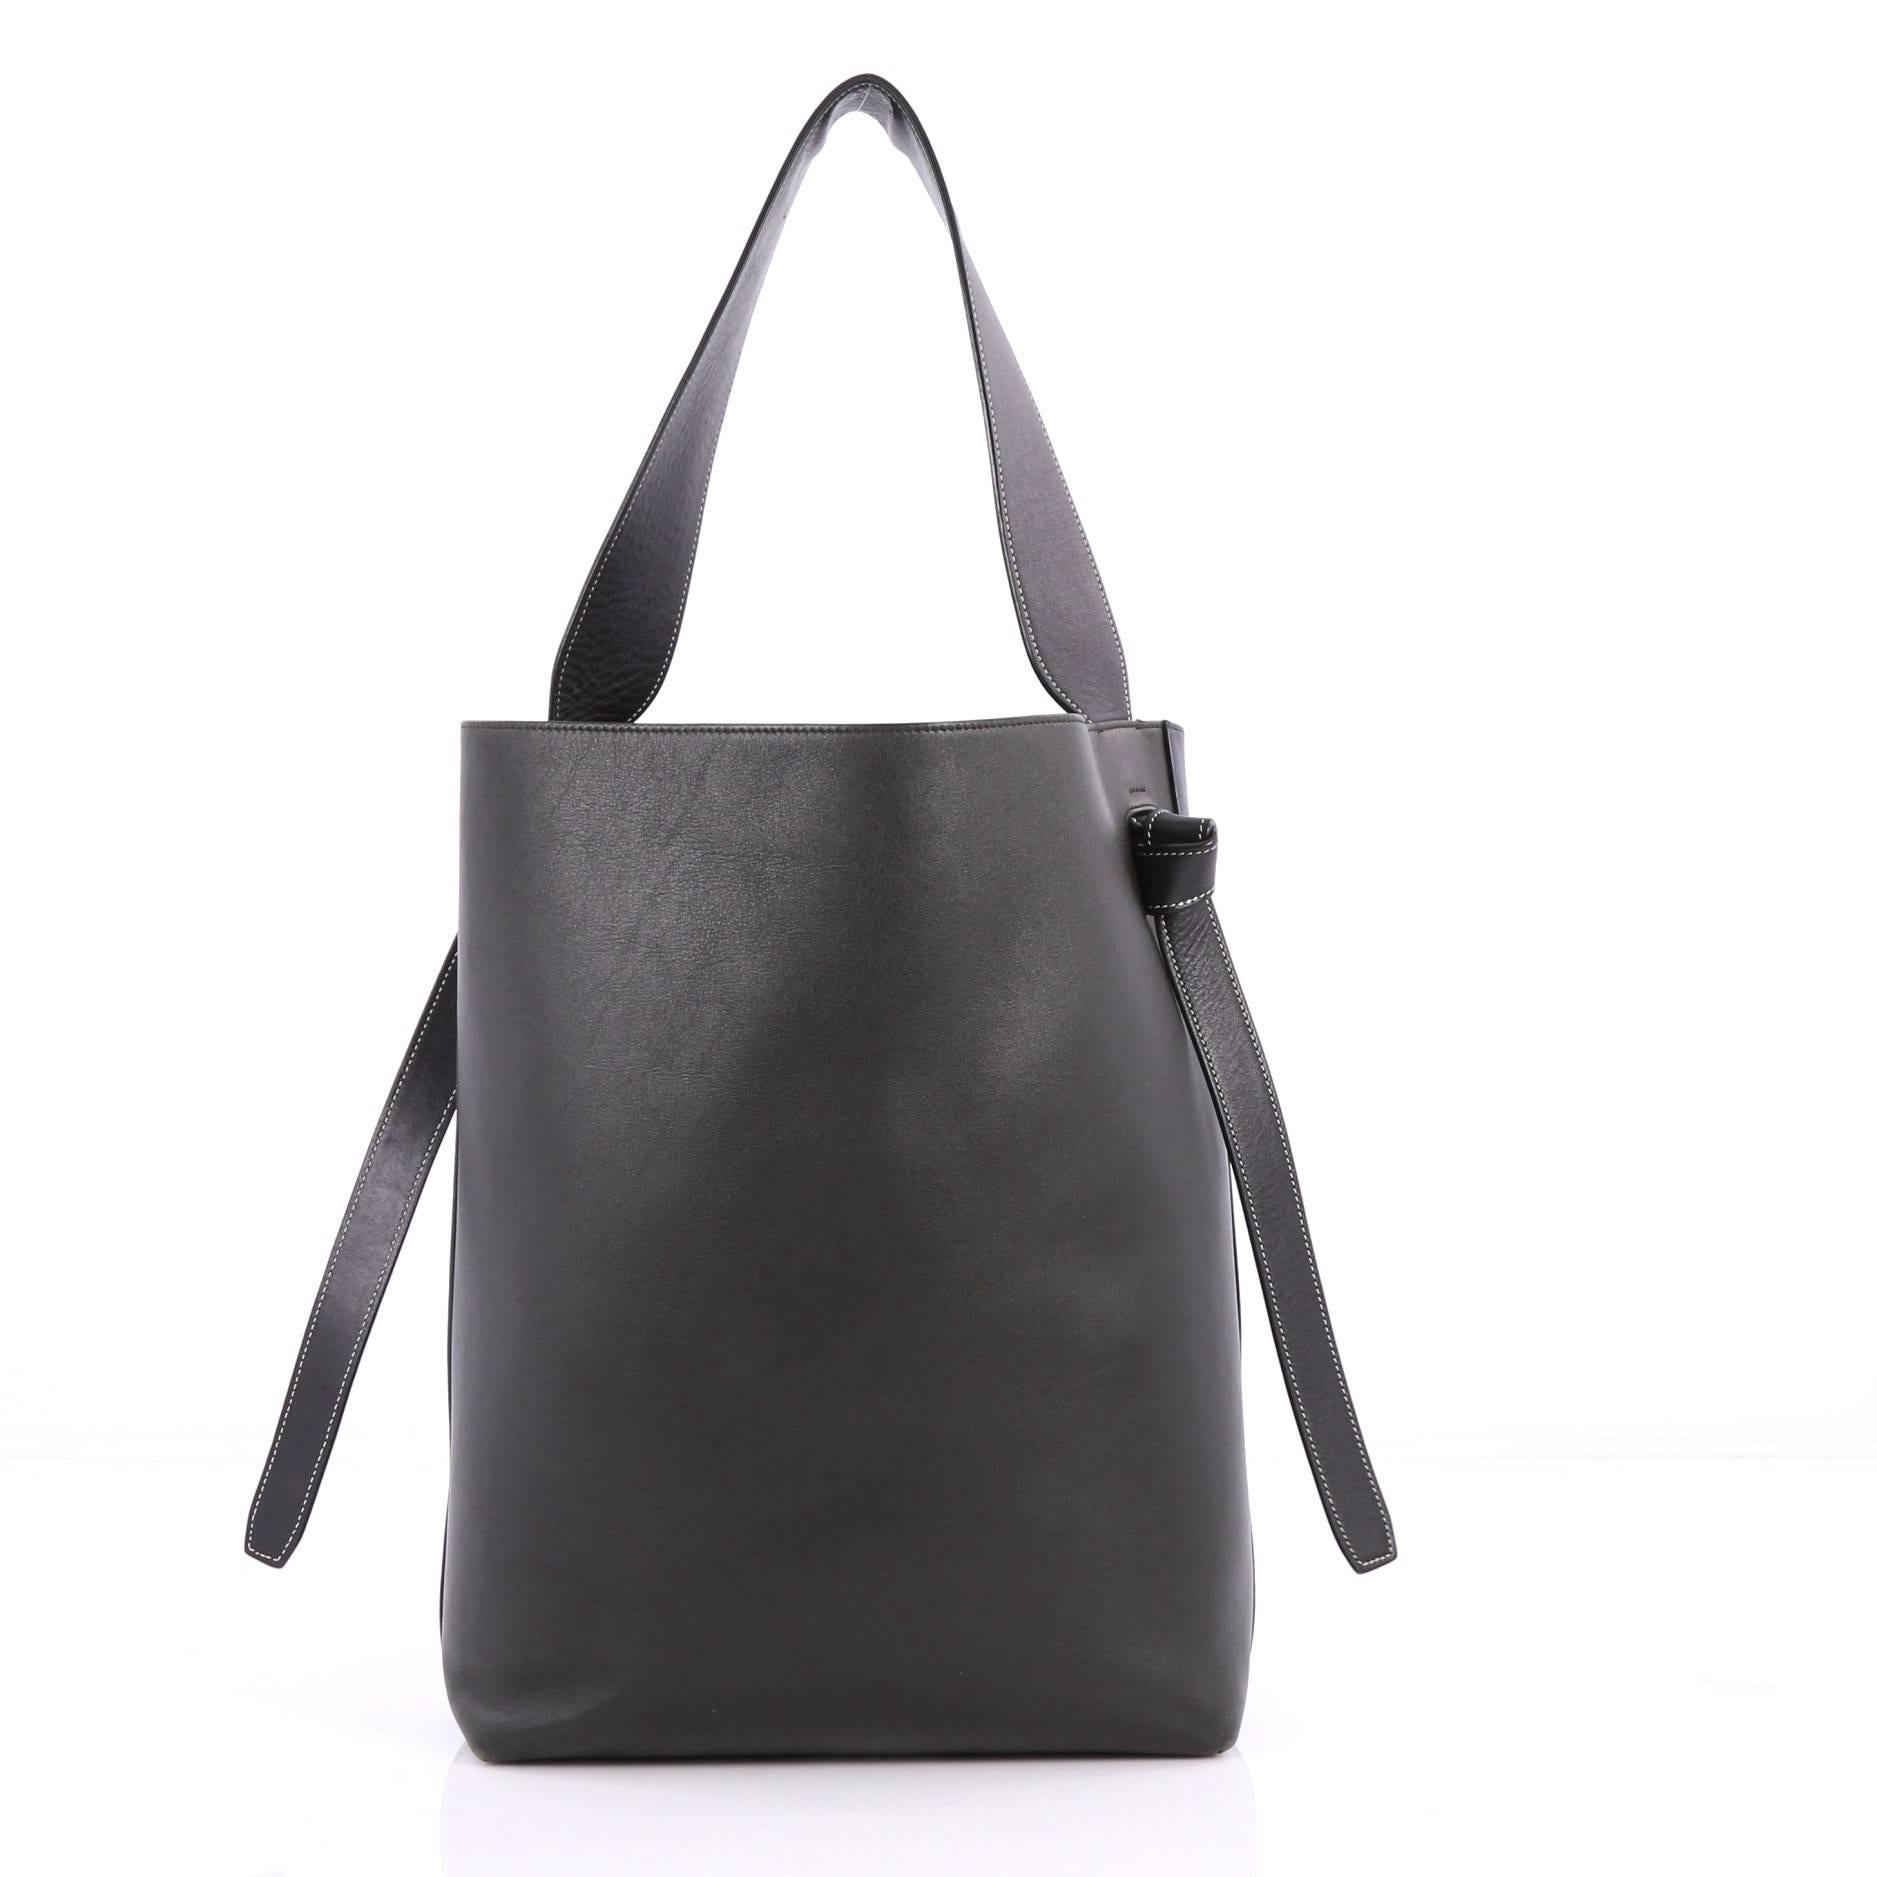 Celine Twisted Cabas Tote Calfskin Small at 1stdibs 07e2f6004a0bf